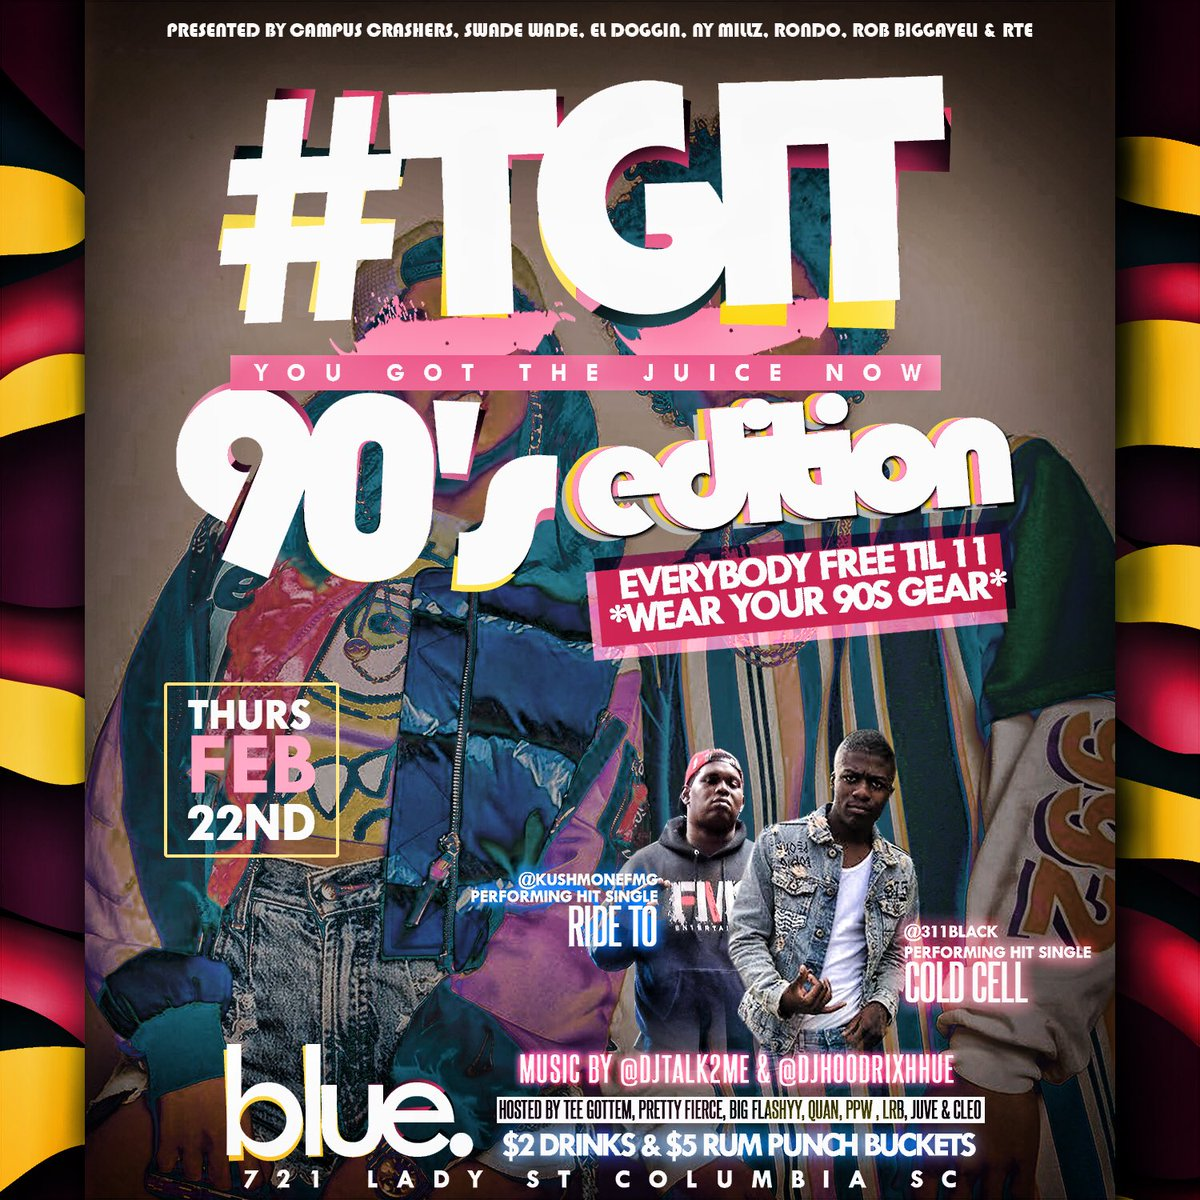 THIS THURSDAY BLUE IN THE VISTA 721 LADY...